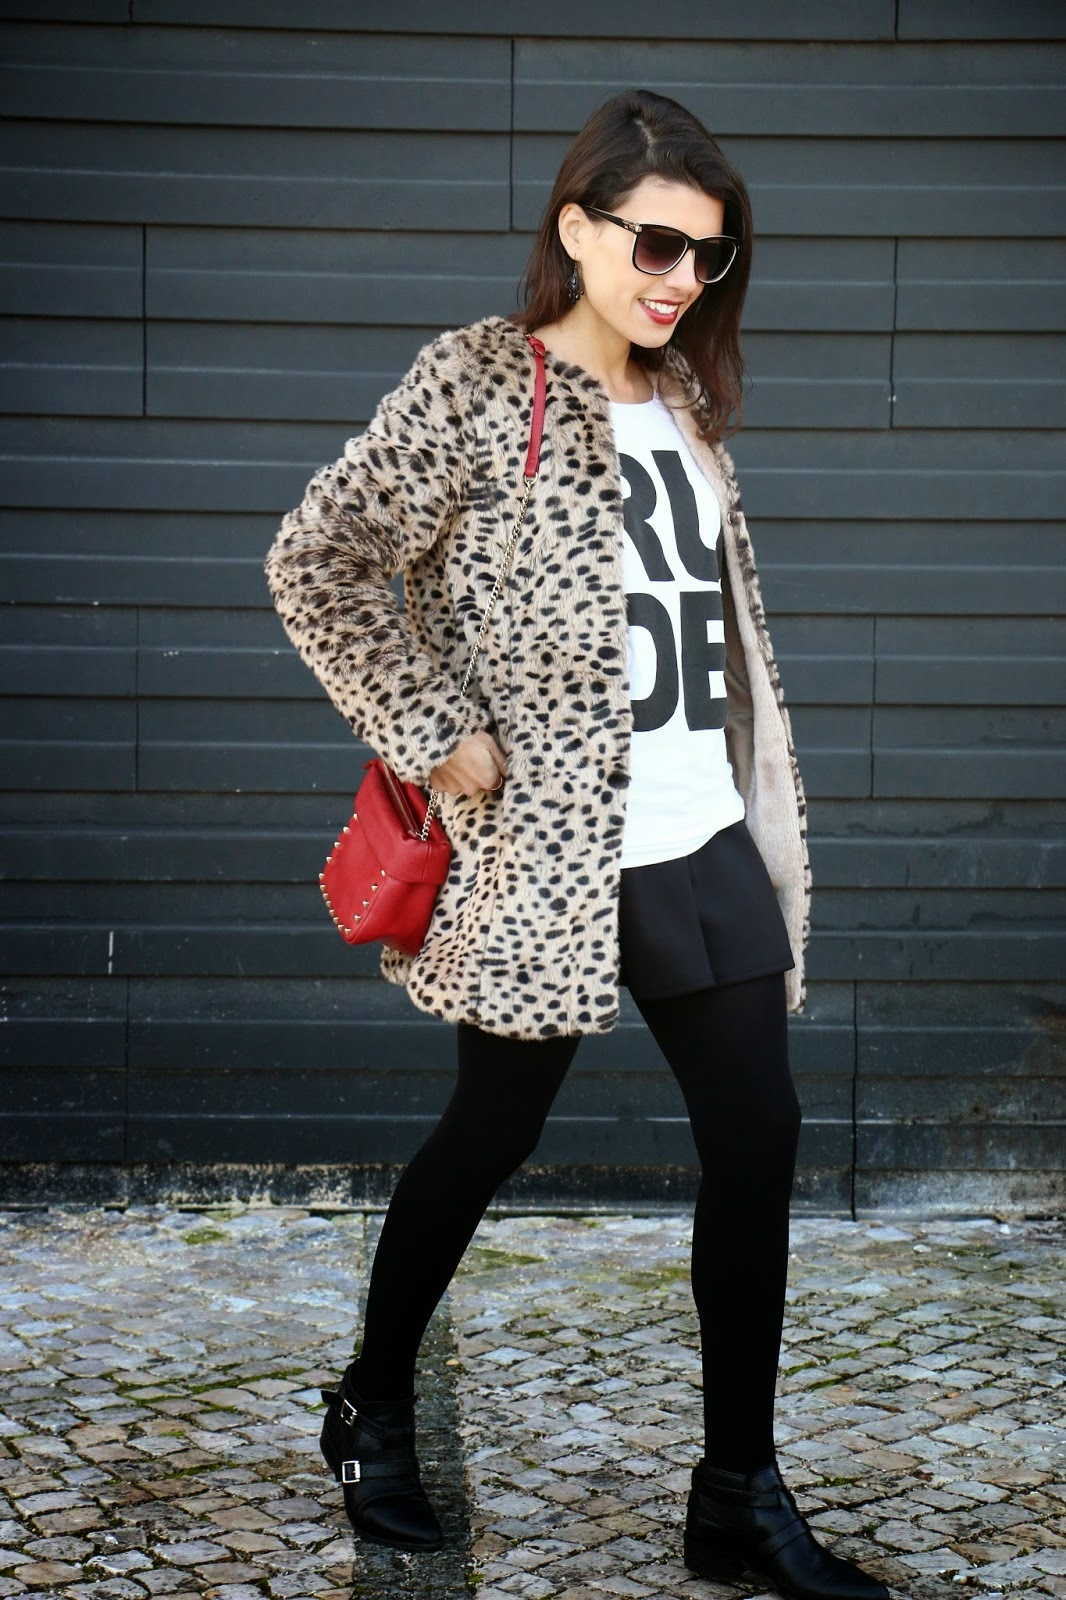 http://ilovefitametrica.blogspot.pt/2015/01/one-look-two-bags.html#more